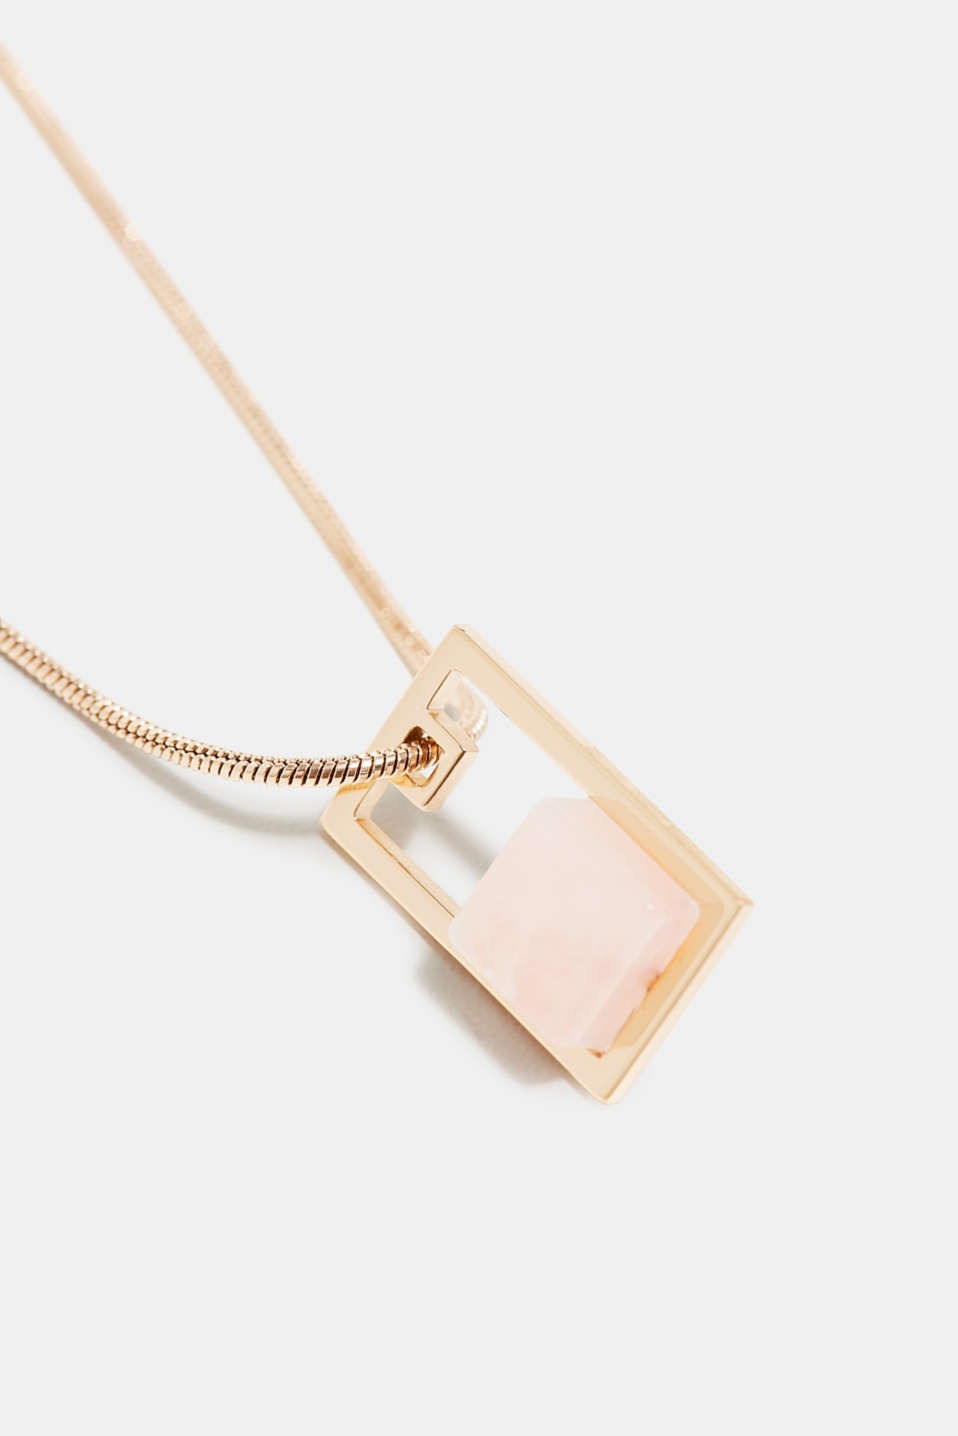 Stainless steel necklace with a gemstone pendant in a marble look, ROSEGOLD, detail image number 1